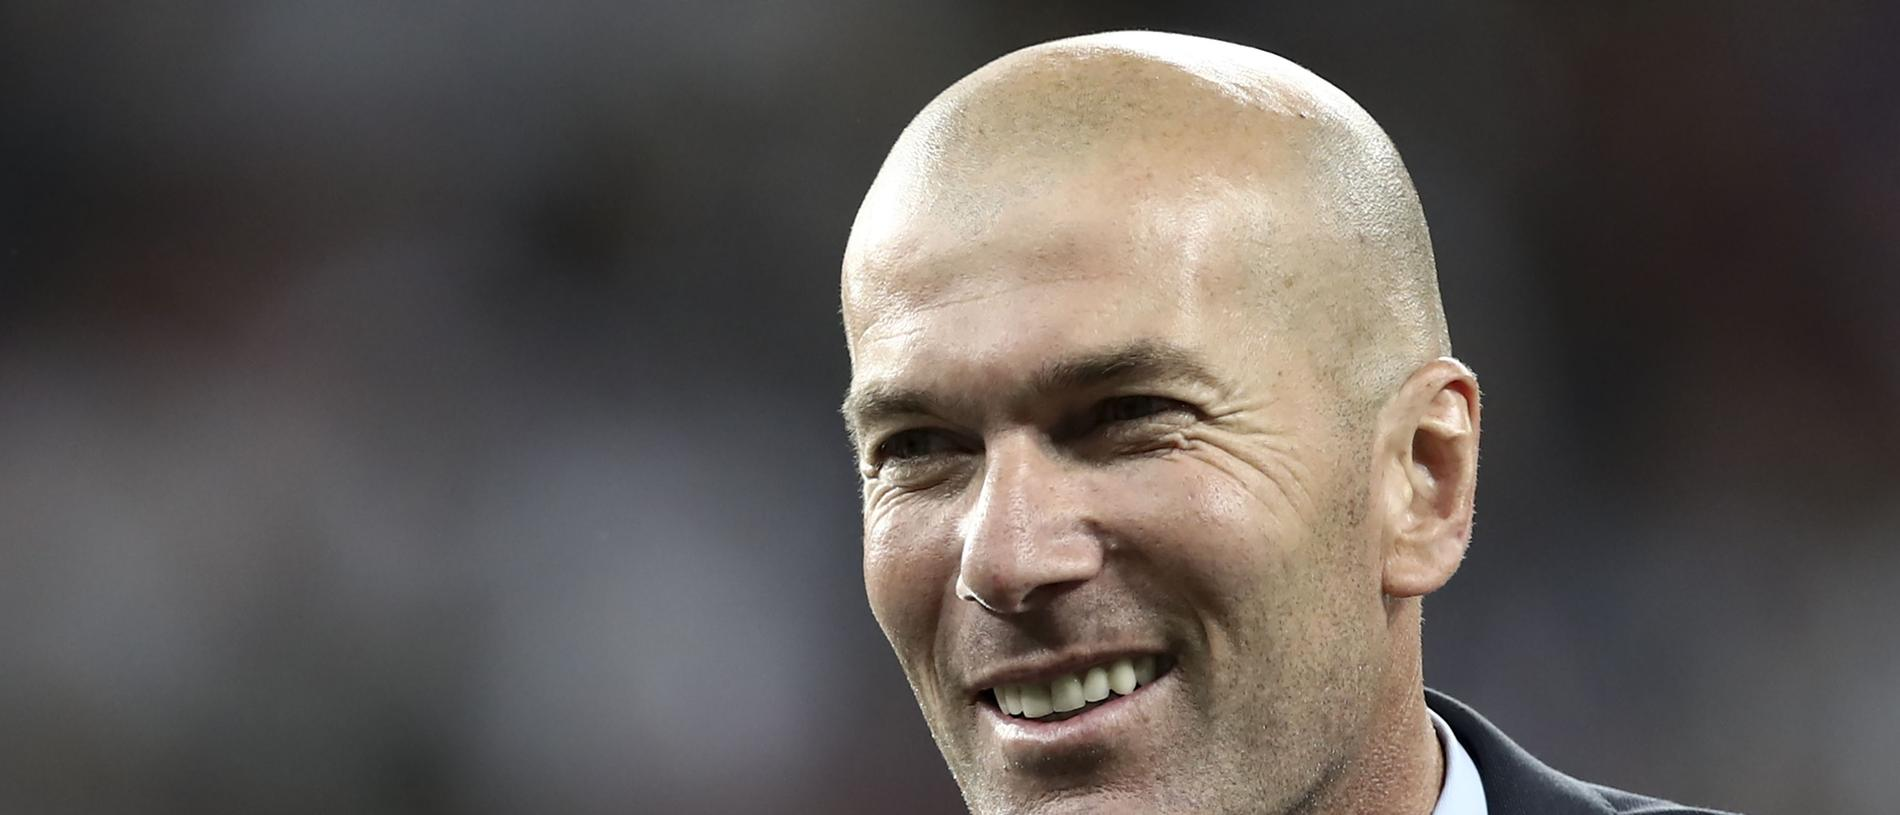 (FILES) In this file photo taken on May 26, 2018 Real Madrid's French coach Zinedine Zidane celebrates after winning the UEFA Champions League final football match between Liverpool and Real Madrid at the Olympic Stadium in Kiev, Ukraine. Real Madrid coach Zinedine Zidane said on May 31, 2018 he was leaving the Spanish giants, just days after winning the Champions League for the third year in a row. / AFP PHOTO / Update Images Press / Isabella BONOTTO